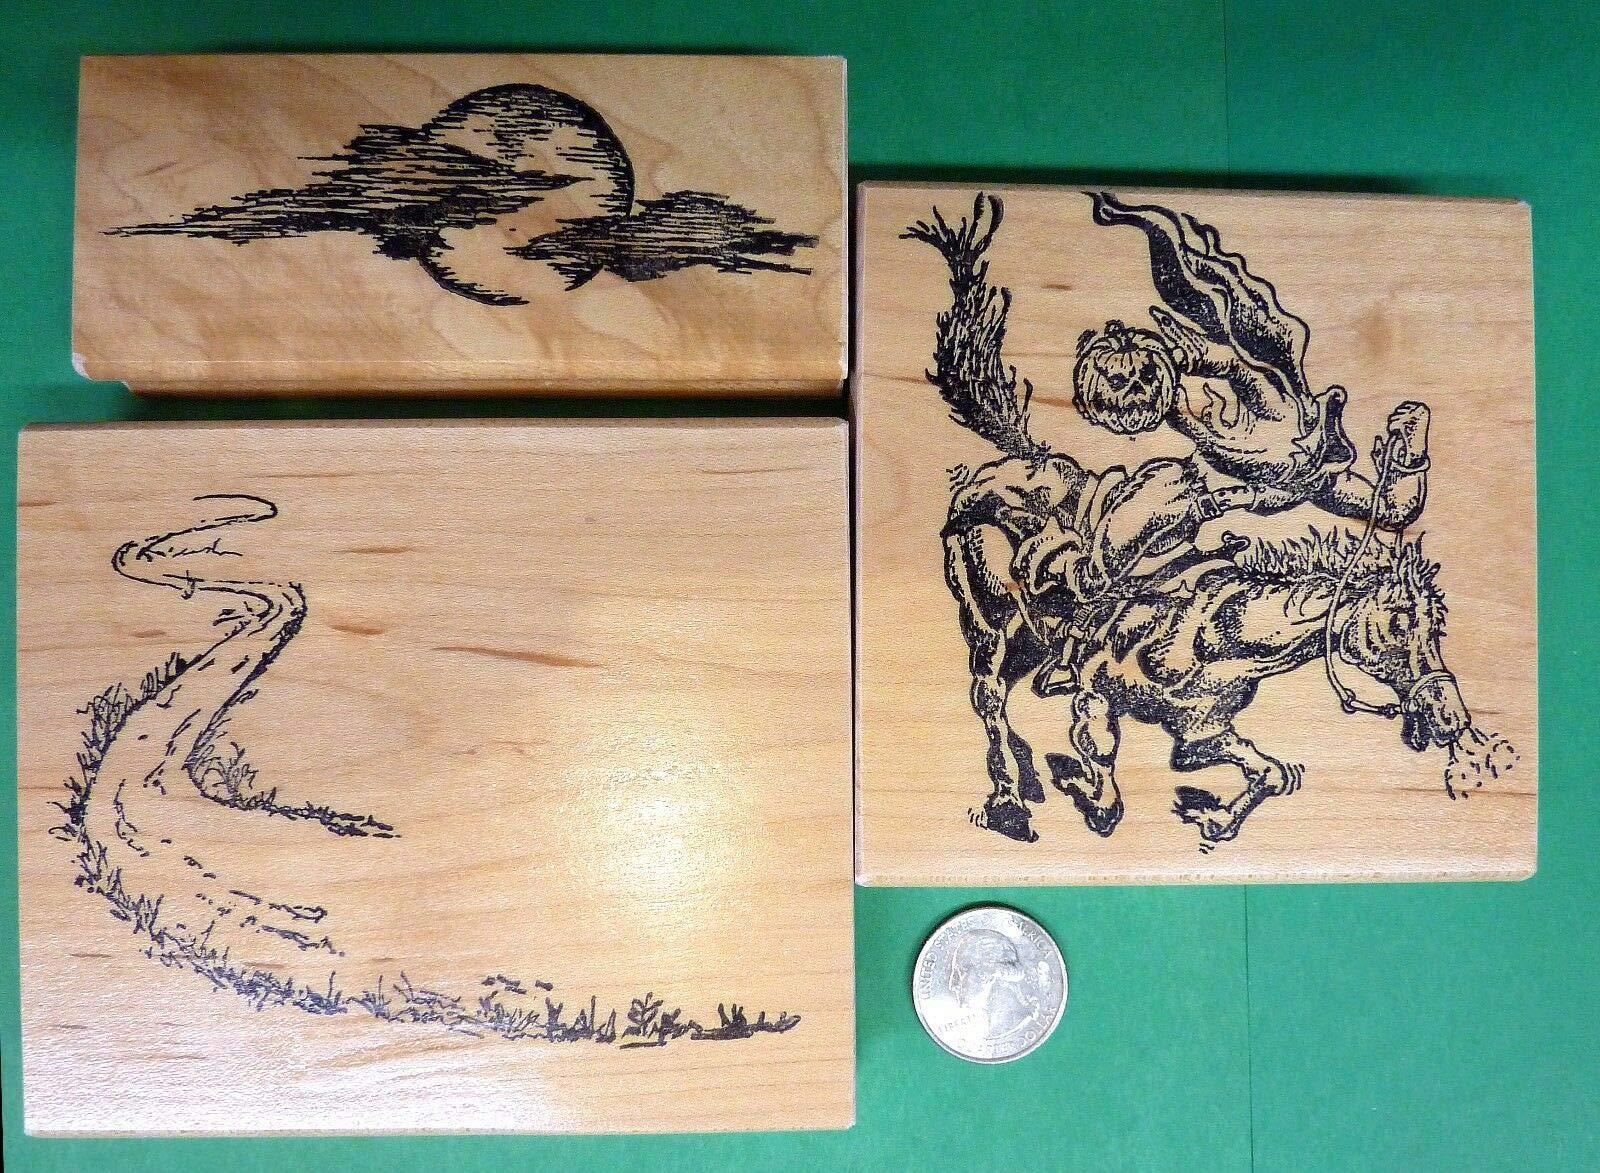 Headless Horseman Wood Mounted Rubber Stamp Set of 3 Pieces, Halloween - Rubber Stamp Wood Carving Blocks by Wooden Stamps